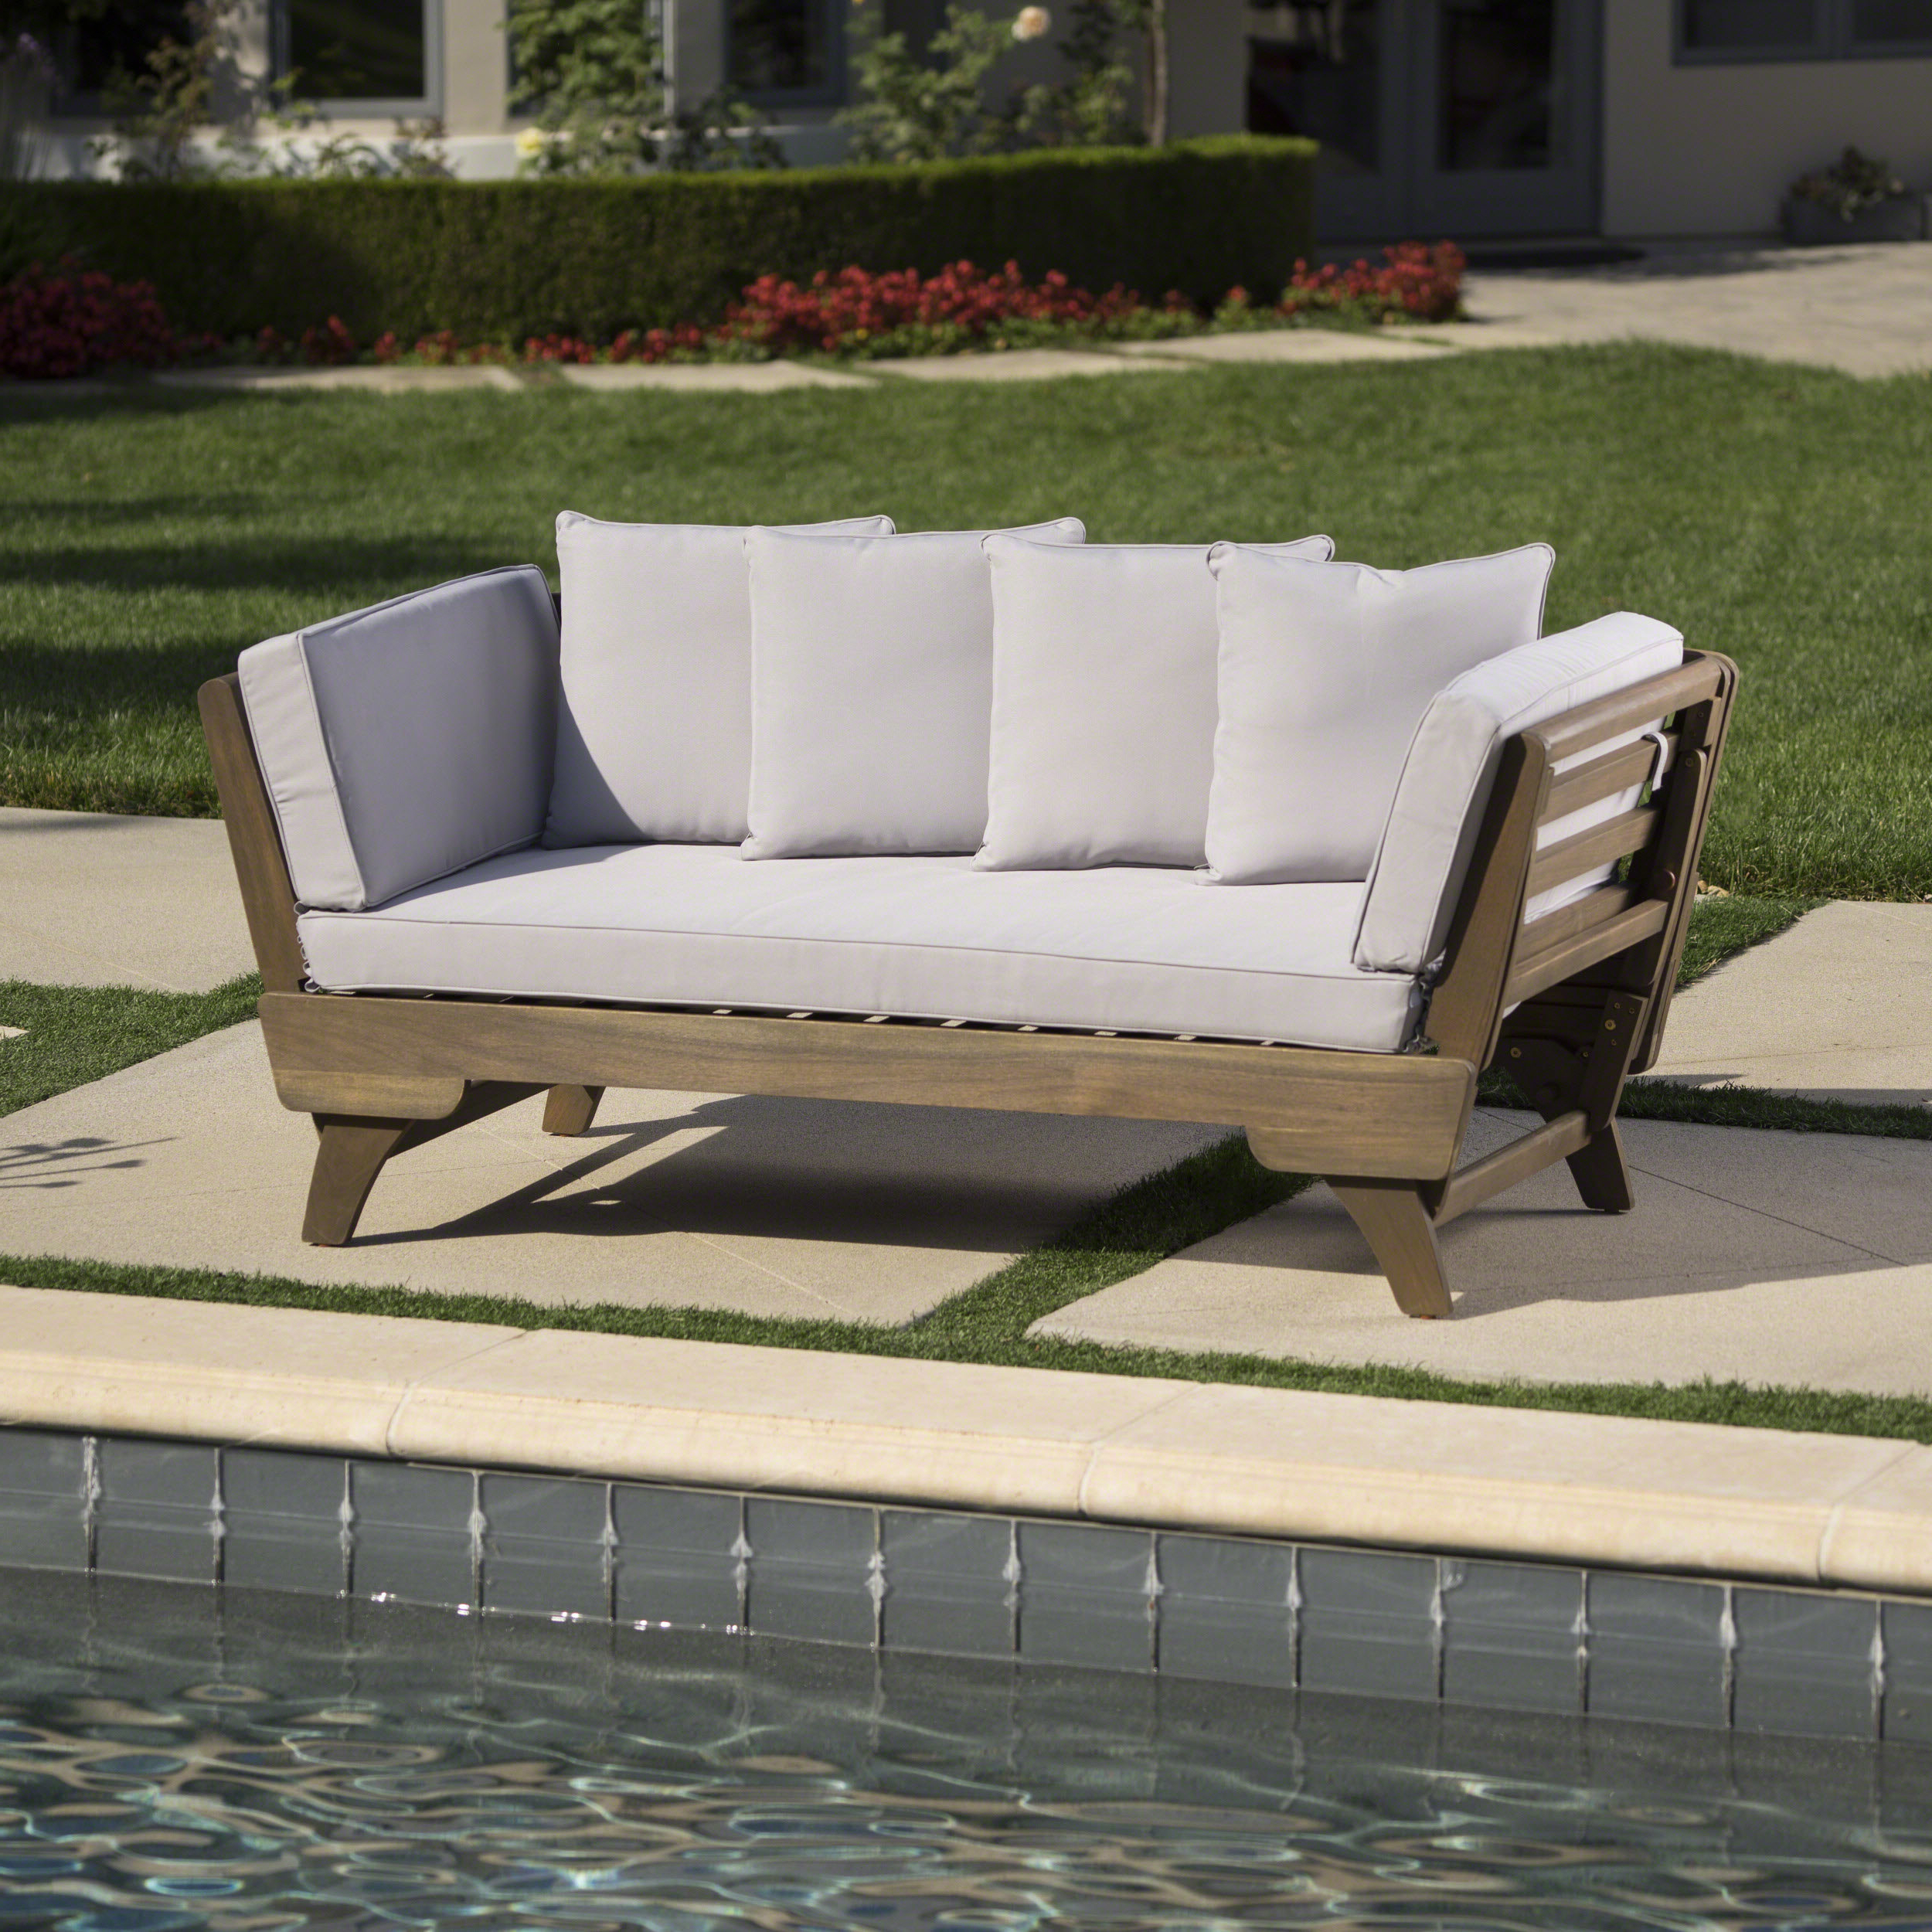 Most Recent Modern & Contemporary Patio Daybeds You'll Love In 2019 Throughout Tripp Patio Daybeds With Cushions (View 13 of 20)